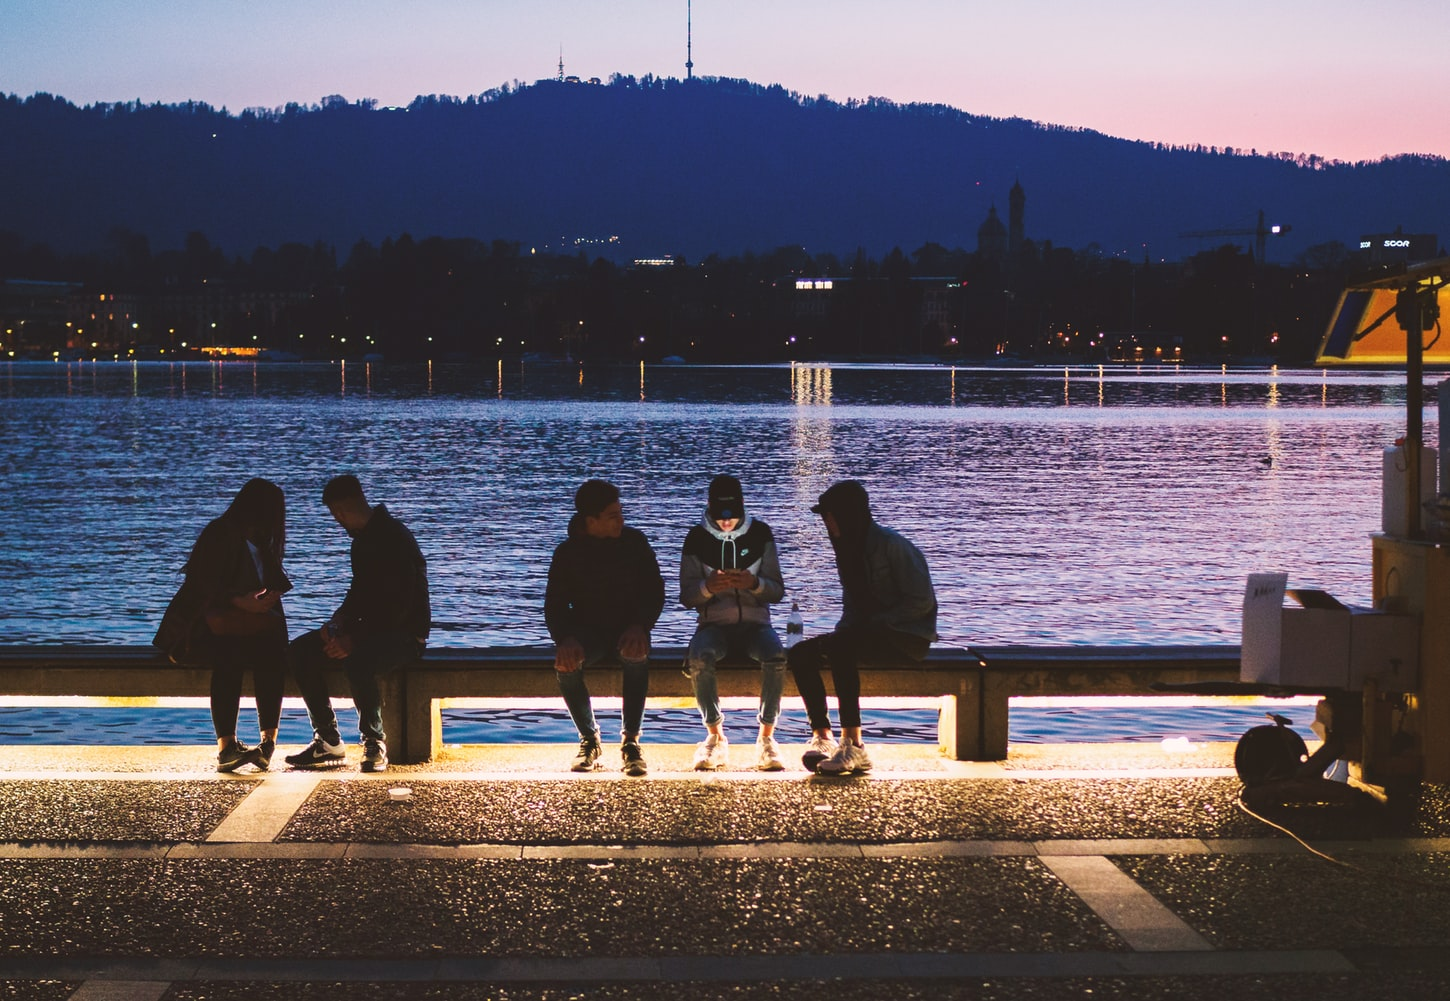 Five millennials sitting near body of water on their cell phones